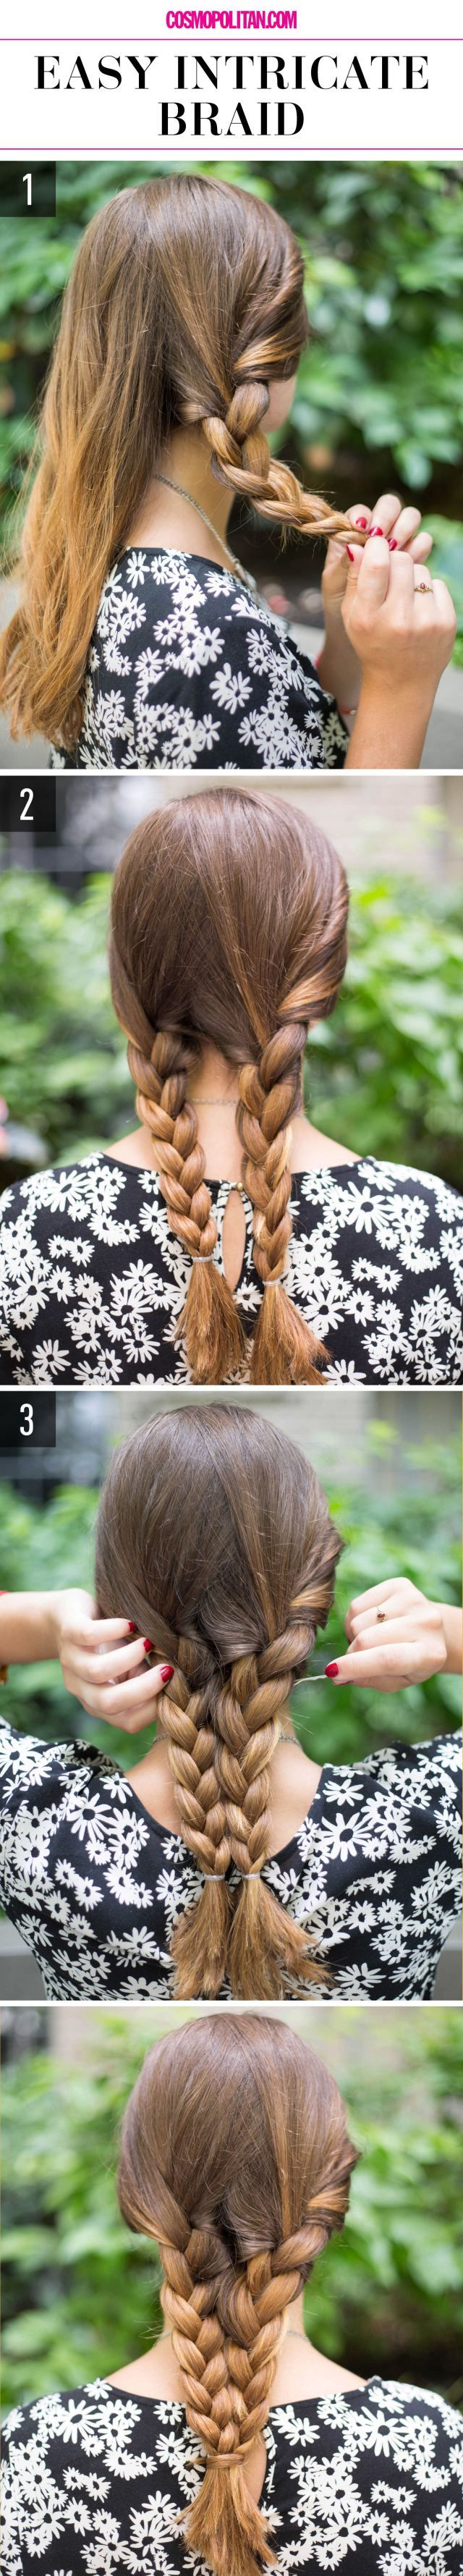 15 Super-Easy Hairstyles for Lazy Girls Who Can't Even | www.jexshop.com/...